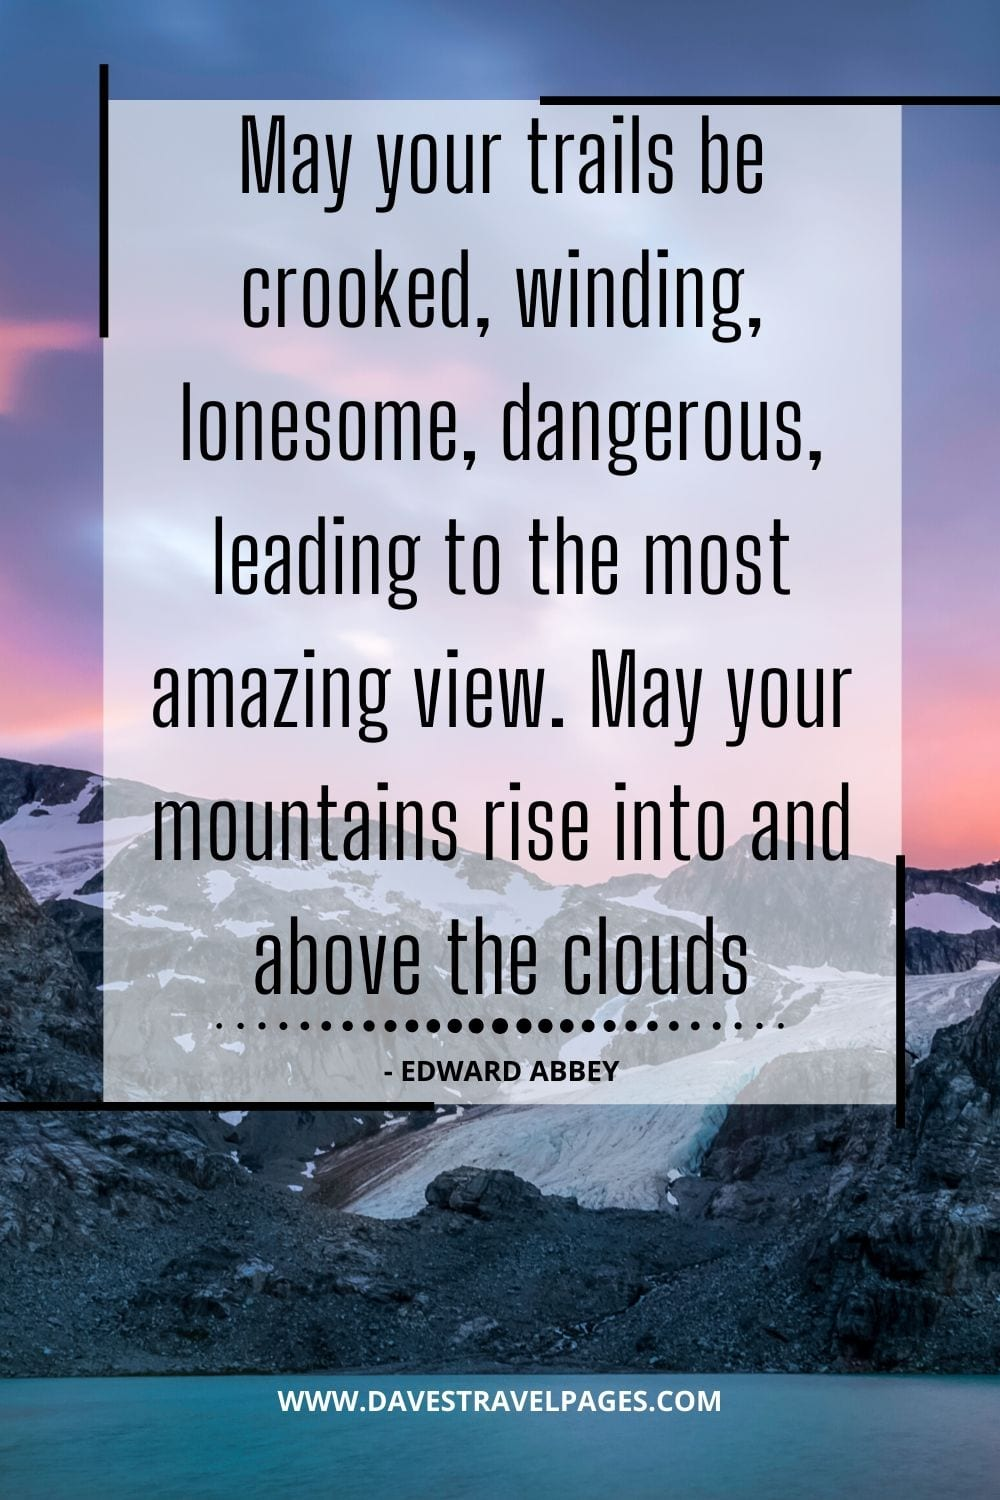 Adventure Quotes: May your trails be crooked, winding, lonesome, dangerous, leading to the most amazing view. May your mountains rise into and above the clouds - Edward Abbey